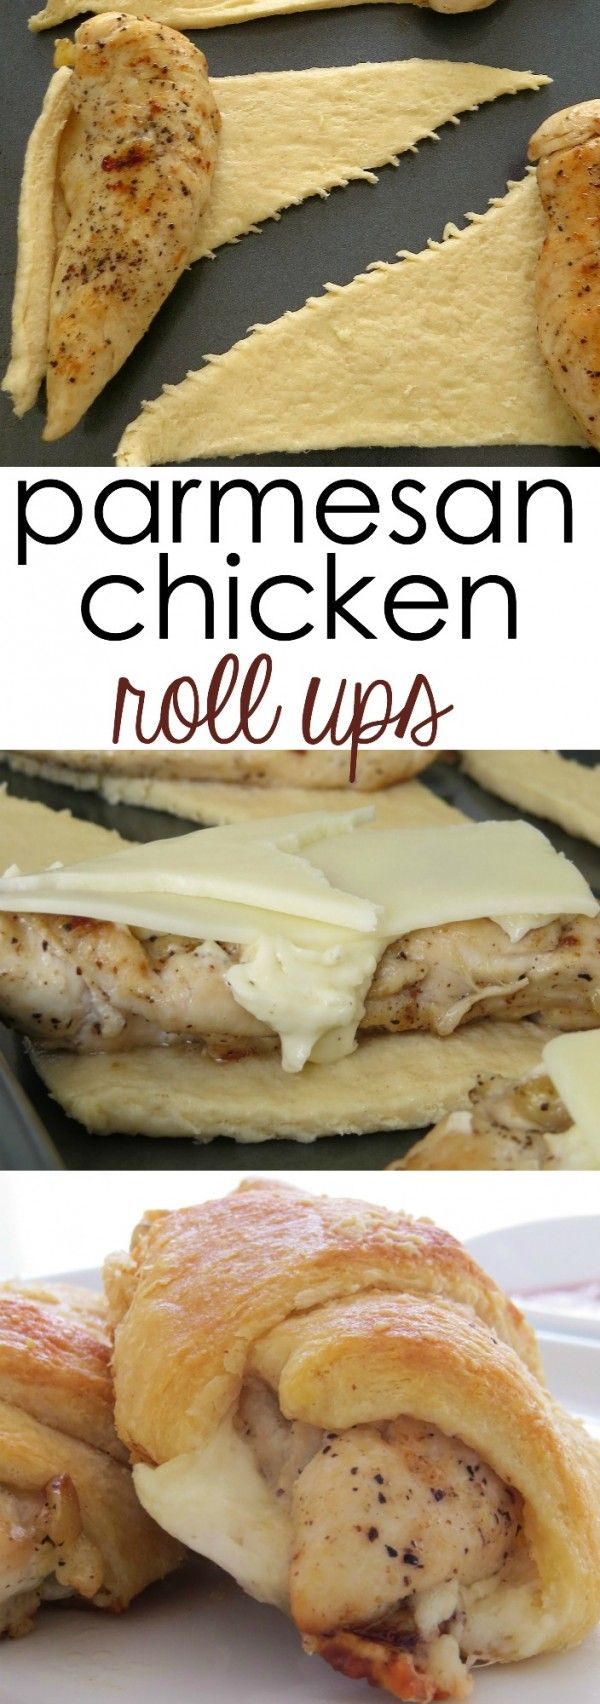 Get the recipe ♥ Parmesan Chicken Roll Ups @recipes_to_go